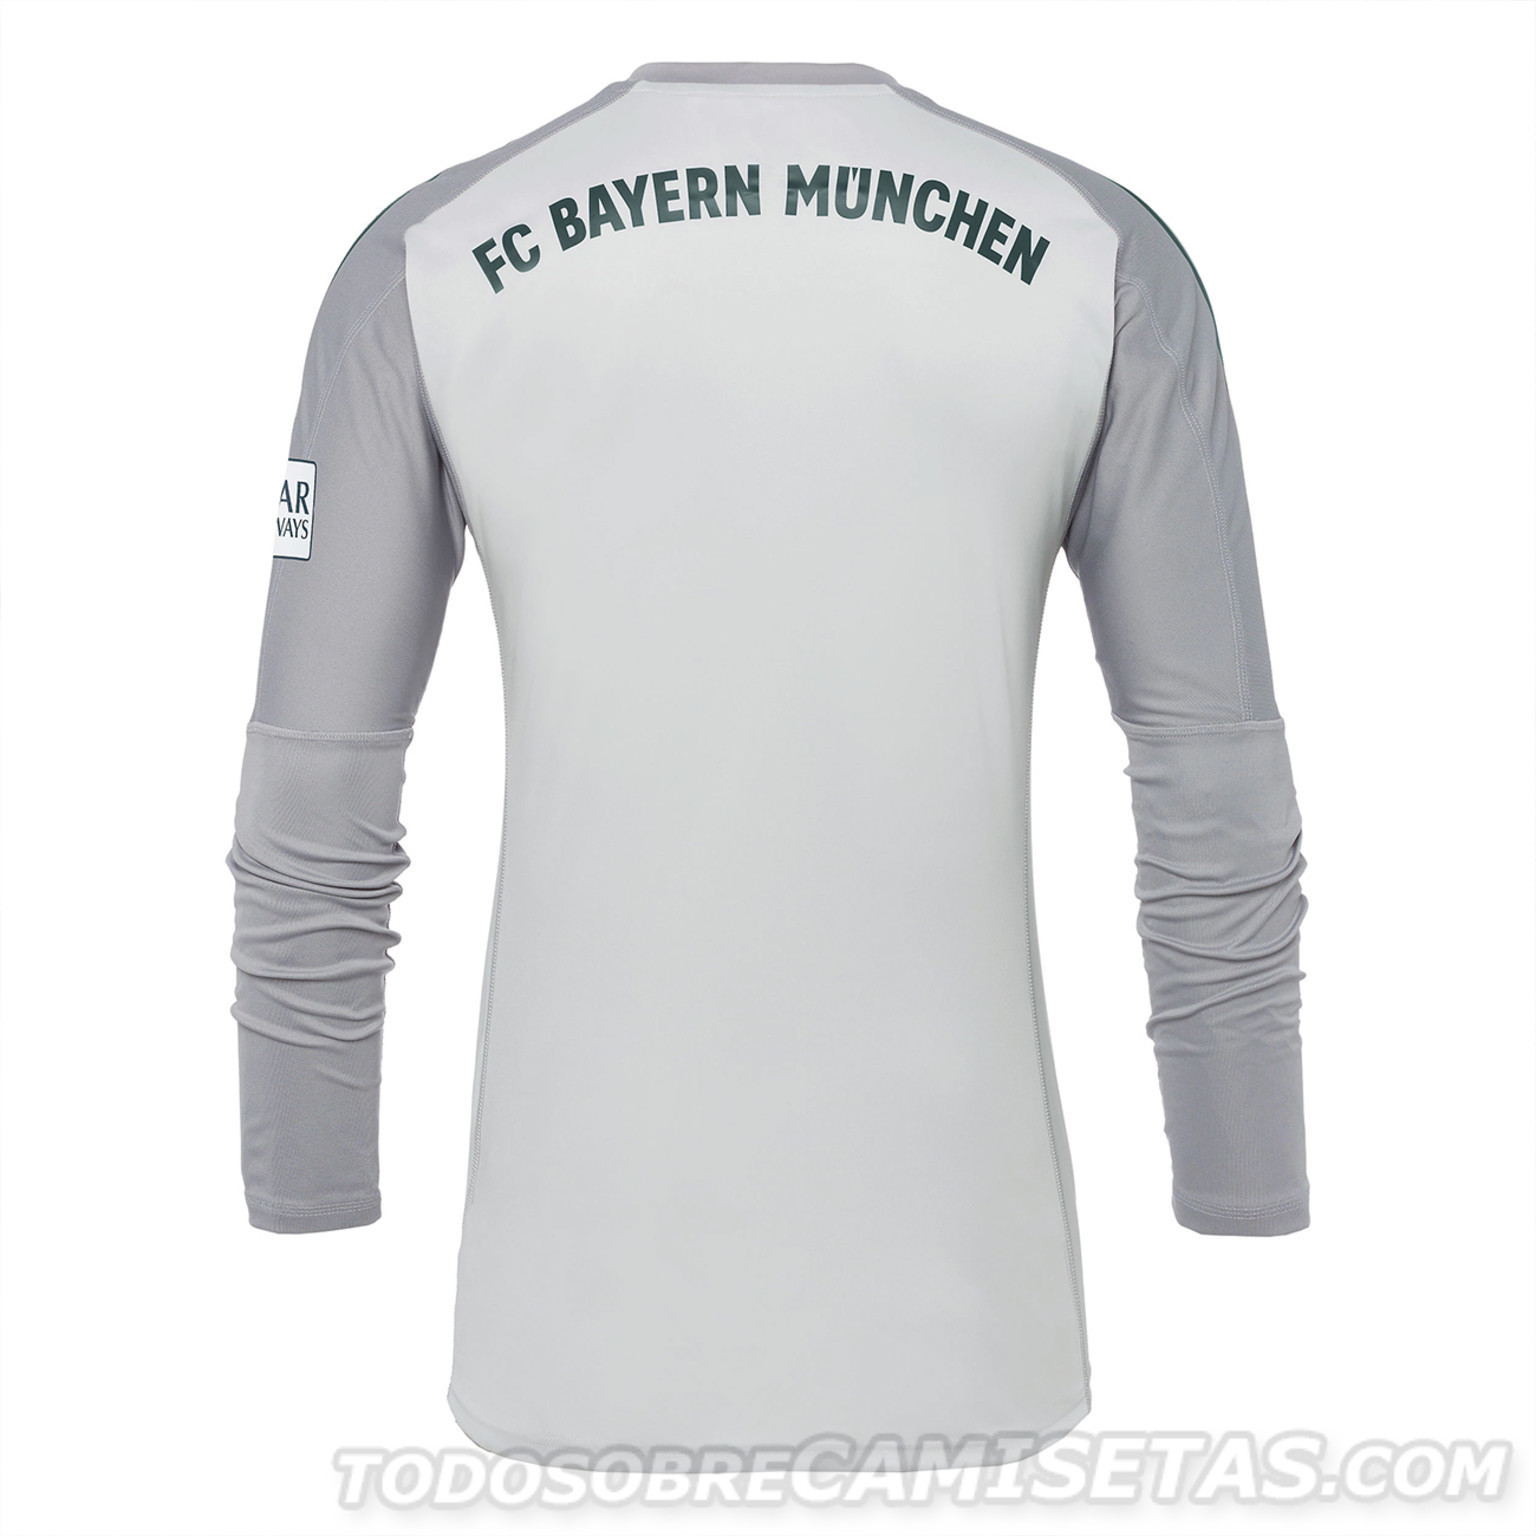 Bayern-Munich-2018-19-adidas-new-GK-home-kit-4.jpg